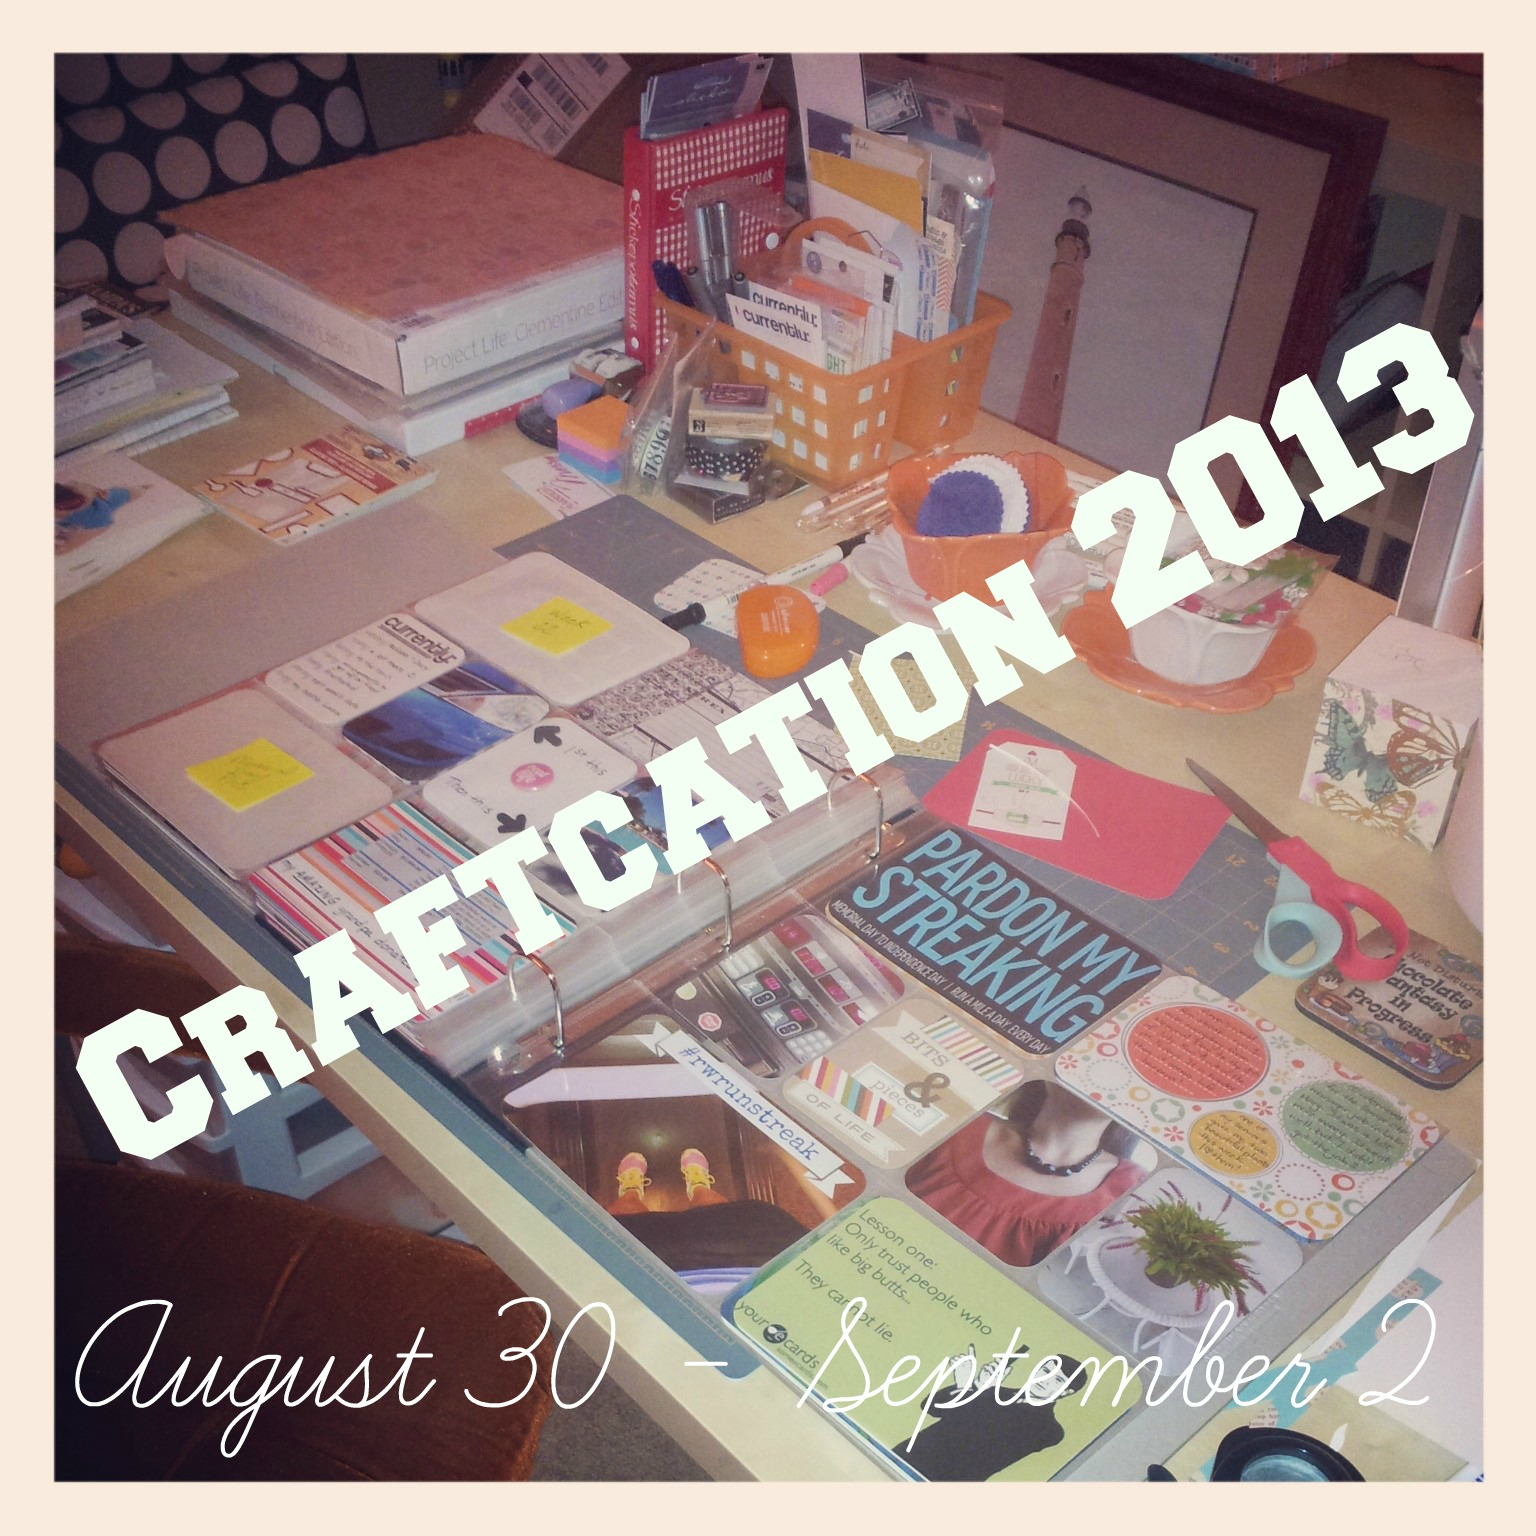 Craftcation 2013